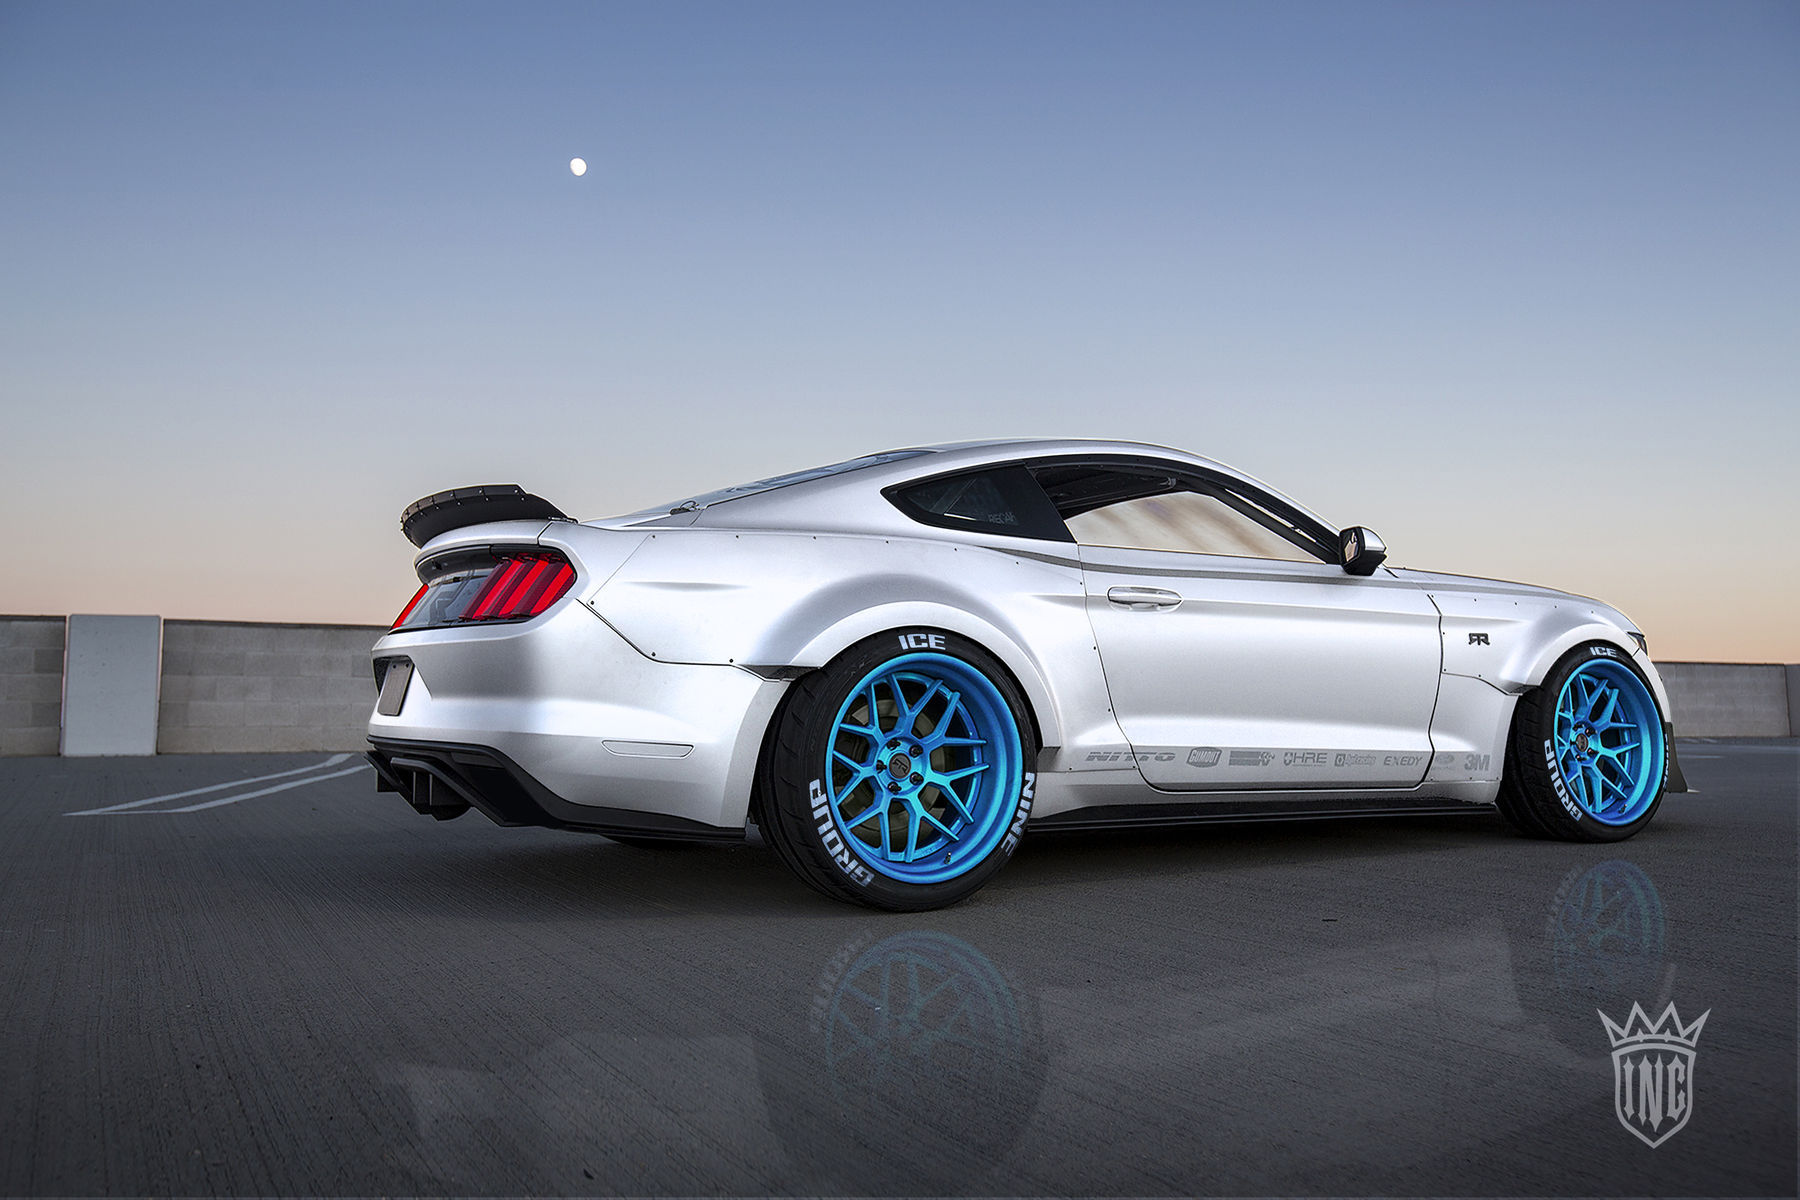 2015 Ford Mustang | '15 Ford Mustang EcoBoost by Ice Nine Group - Parking Lot Photoshoot